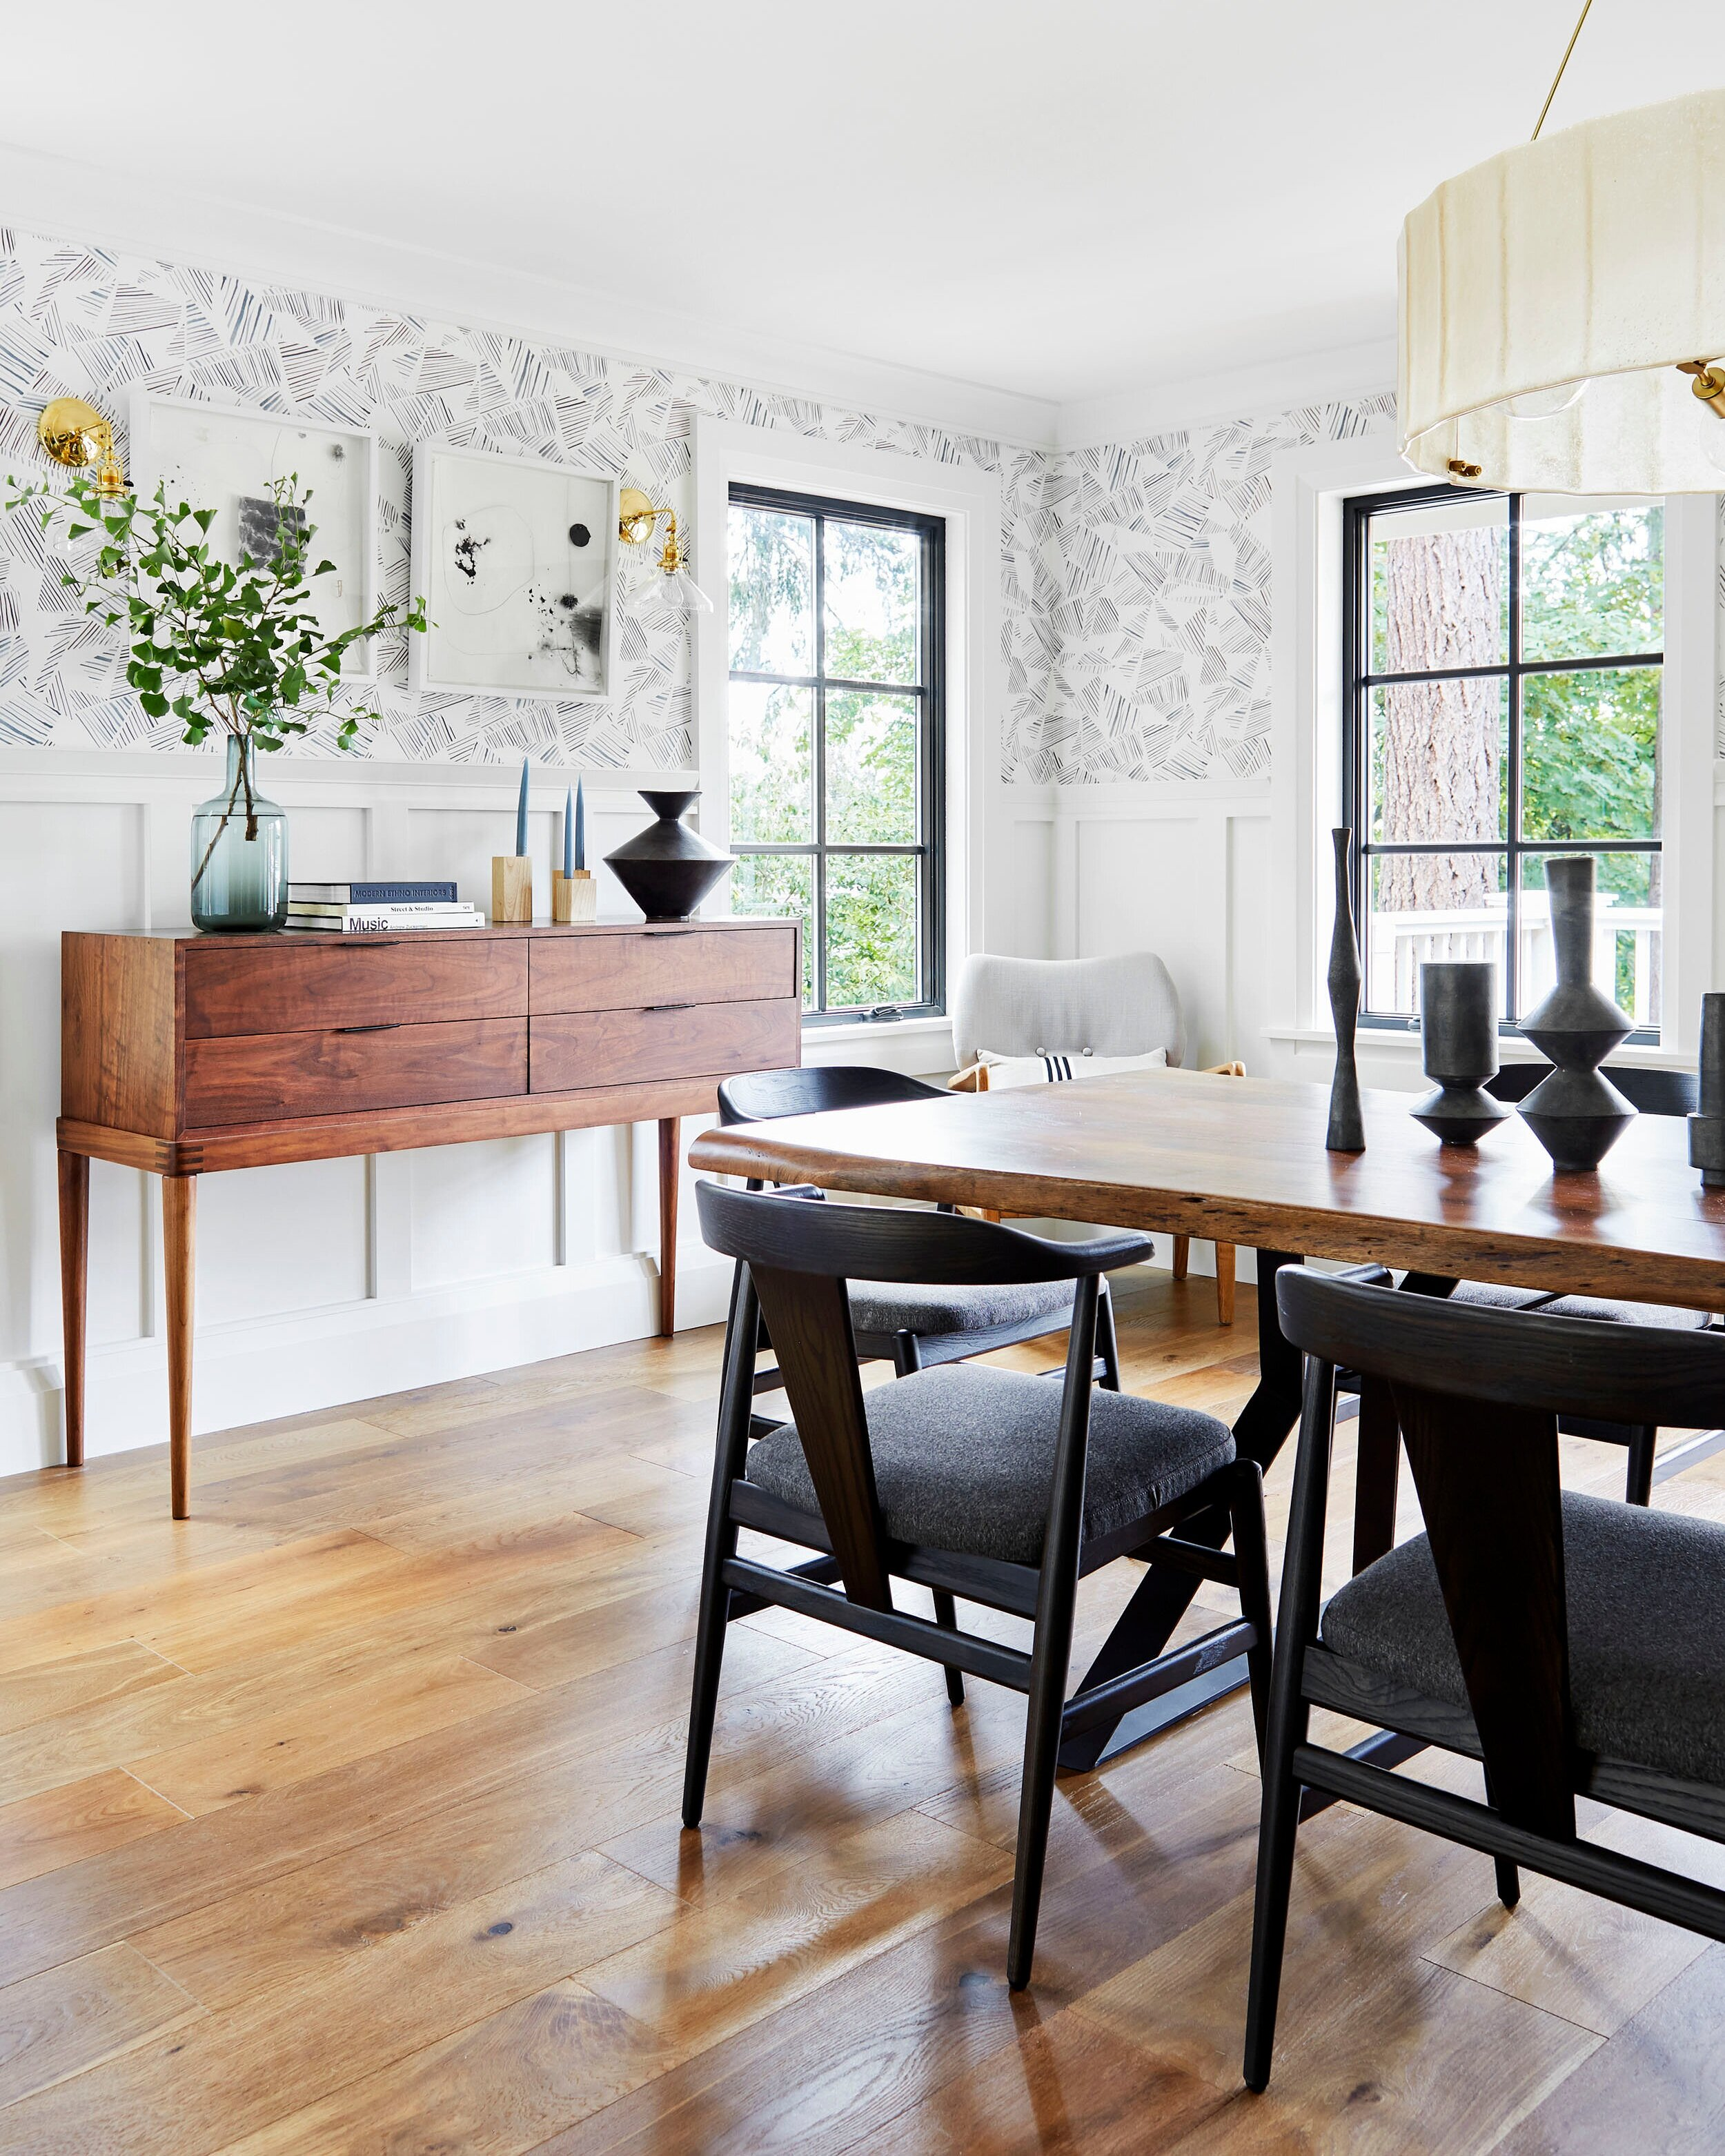 Design by  Emily Henderson  and  Brady Tolbert  | Photography: Sara Tramp for EHD